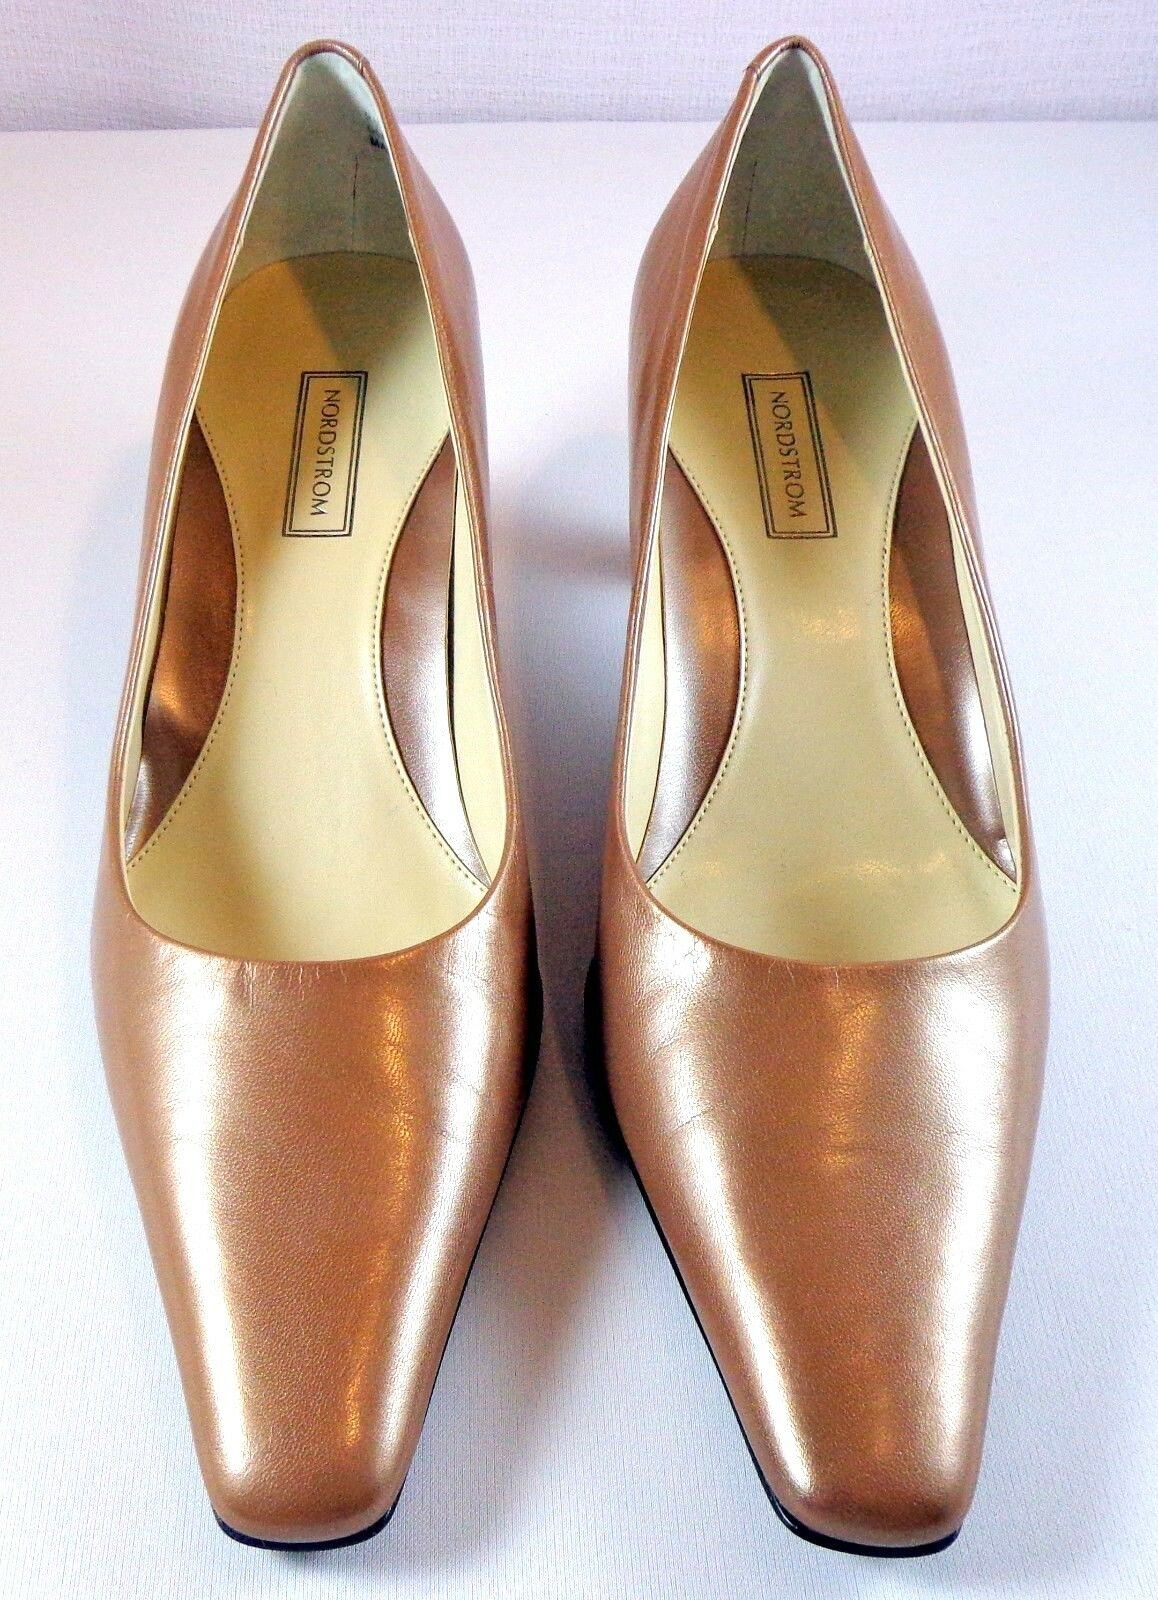 Nordstrom Leather Pumps Size 8.5 N Slip On shoes